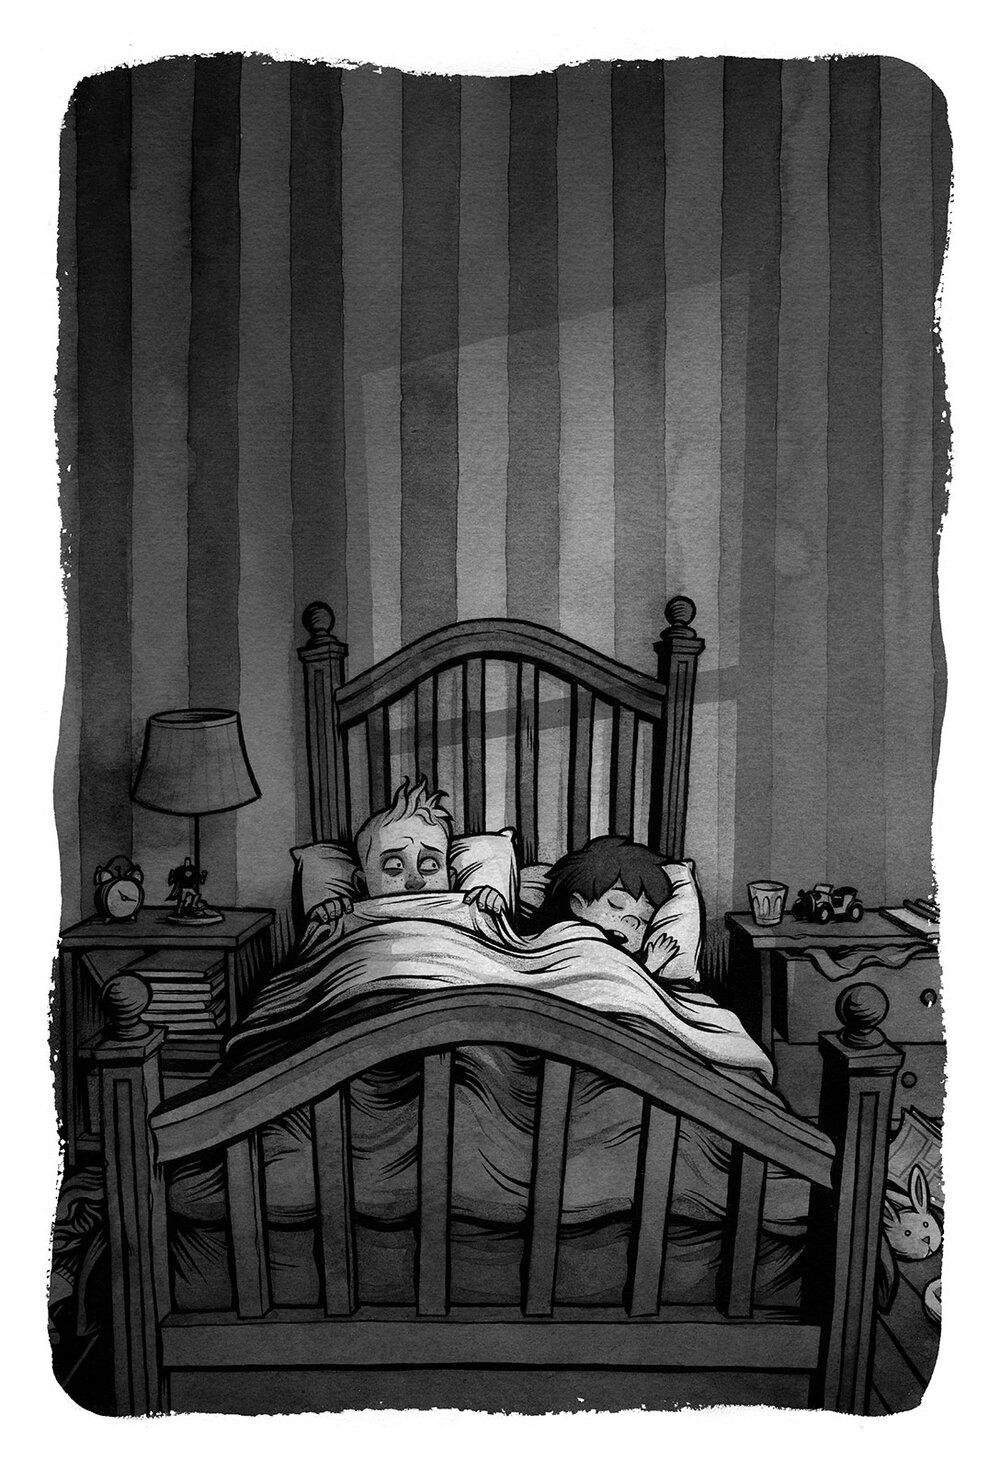 Interior illustration for  Nightmares!  by Jason Segel & Kirsten Miller